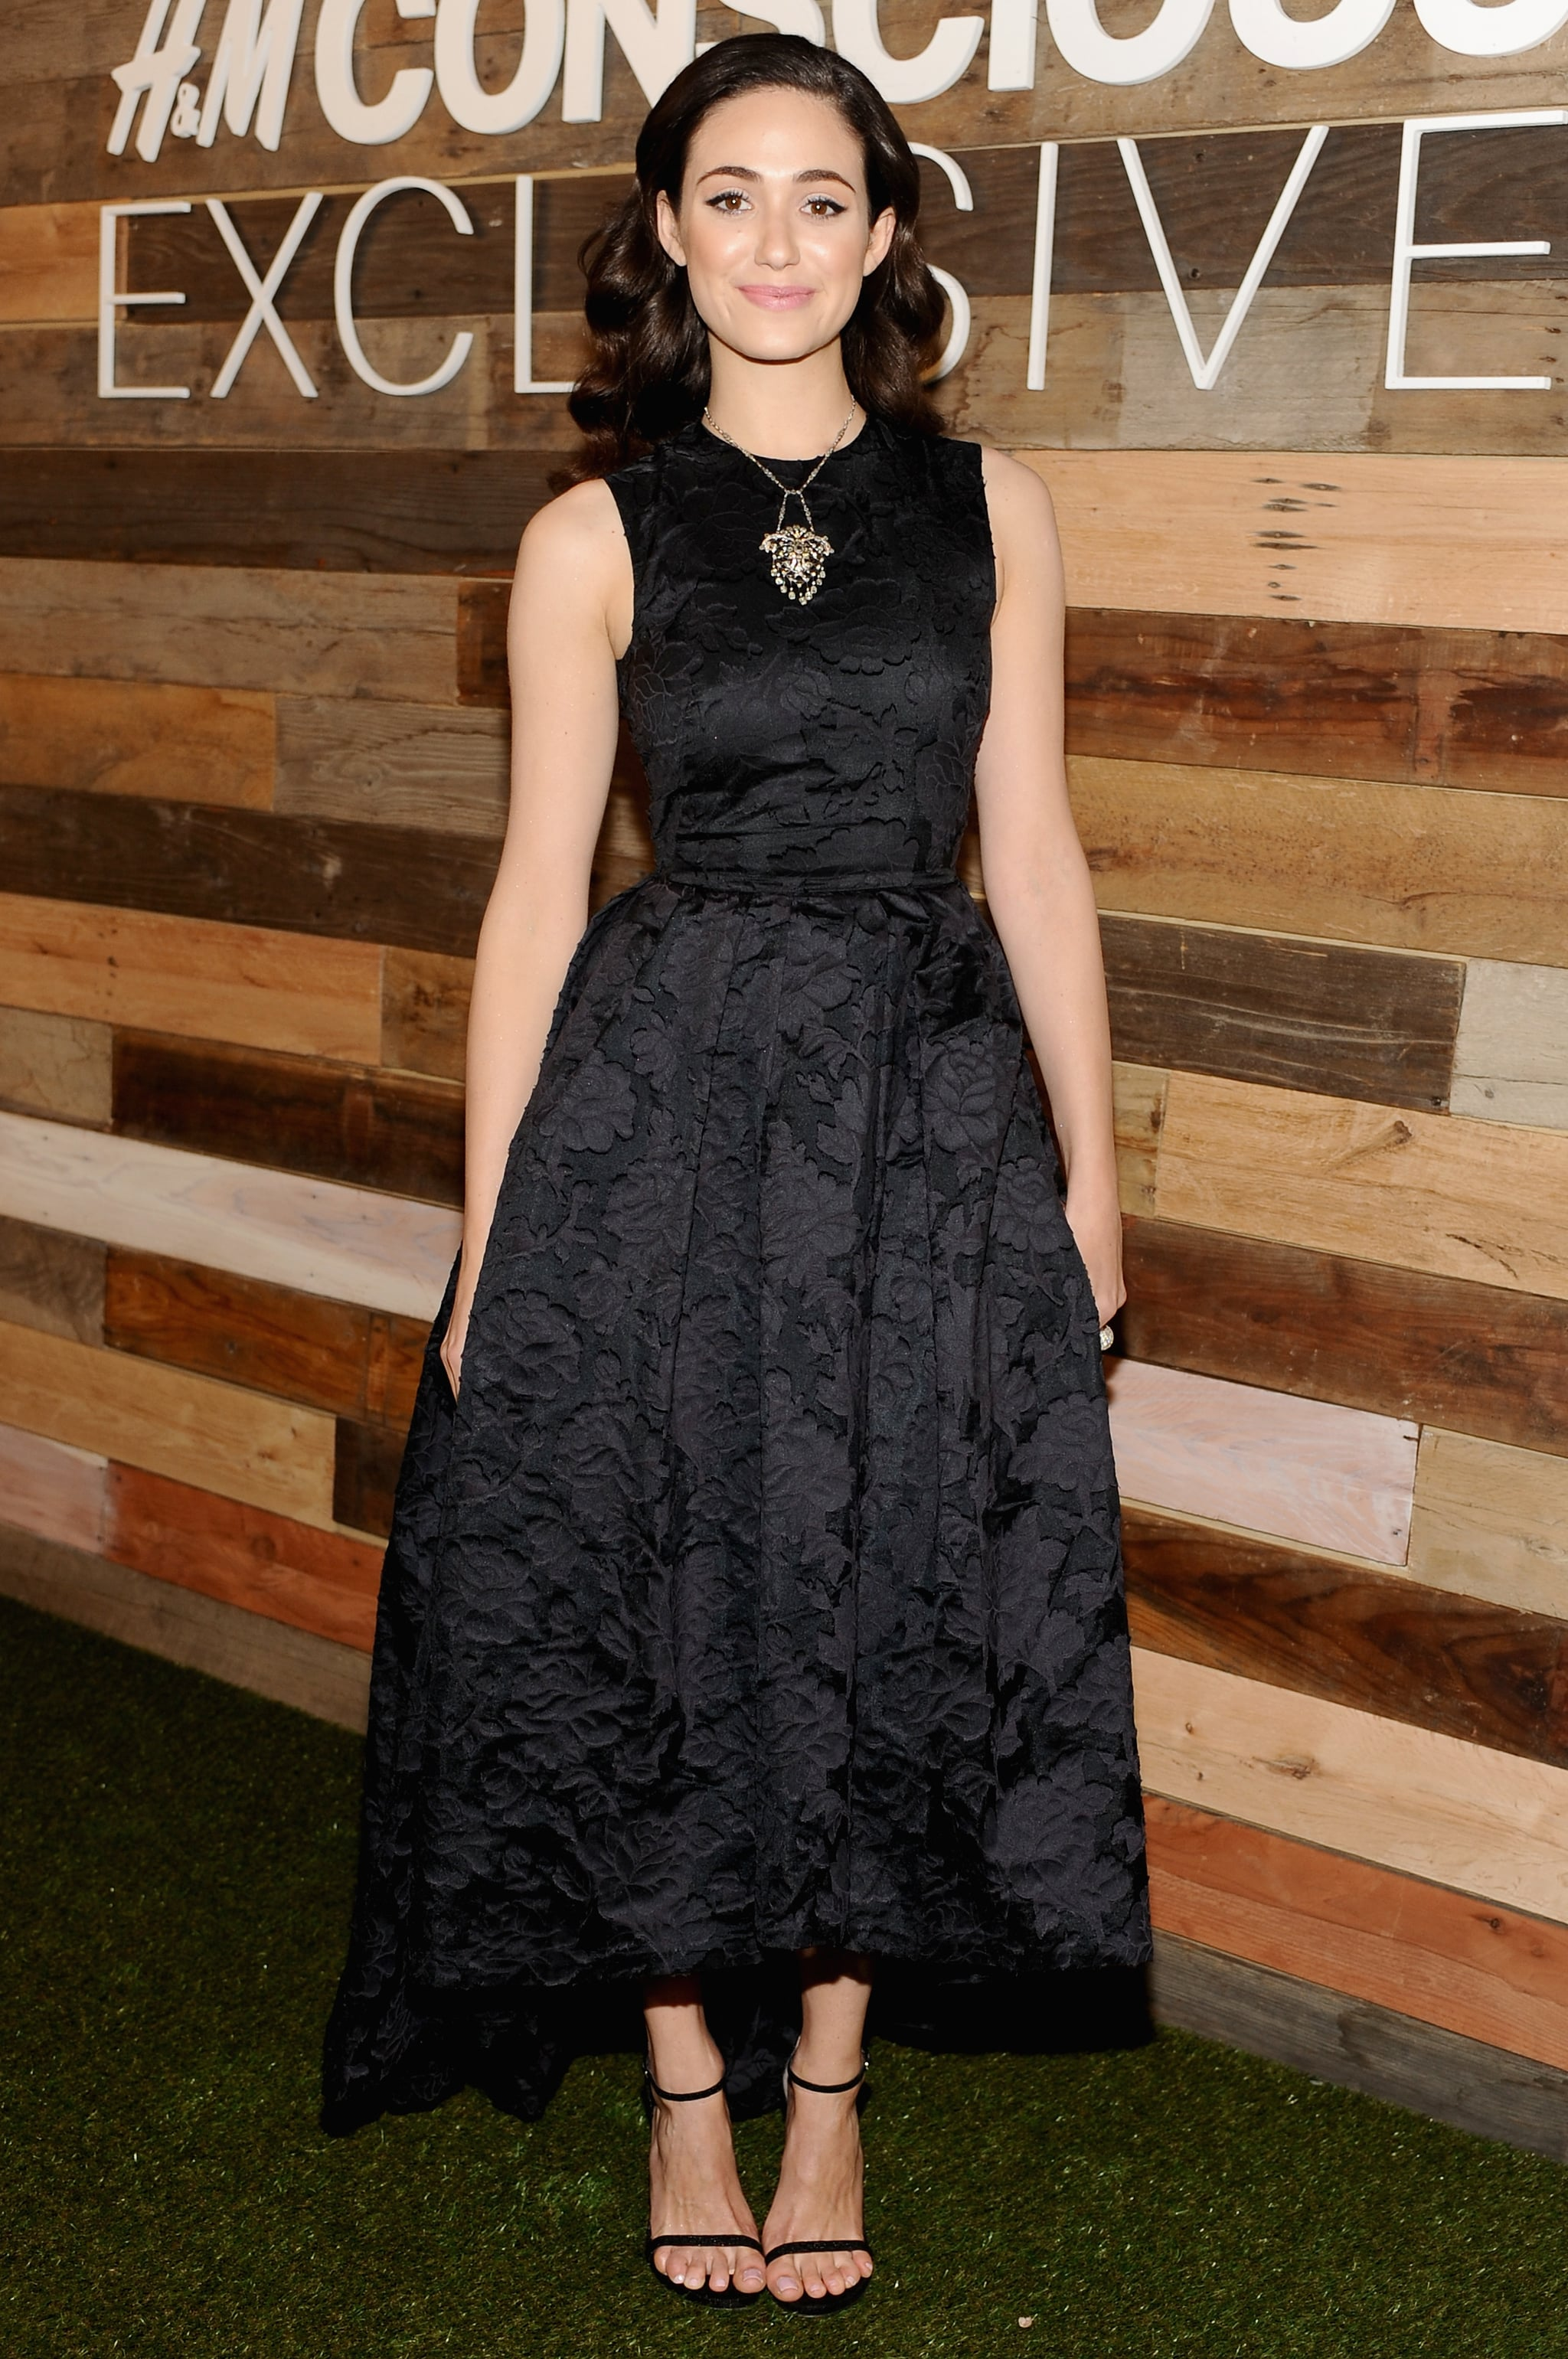 Emmy Rossum Wearing H&M Conscious Collection